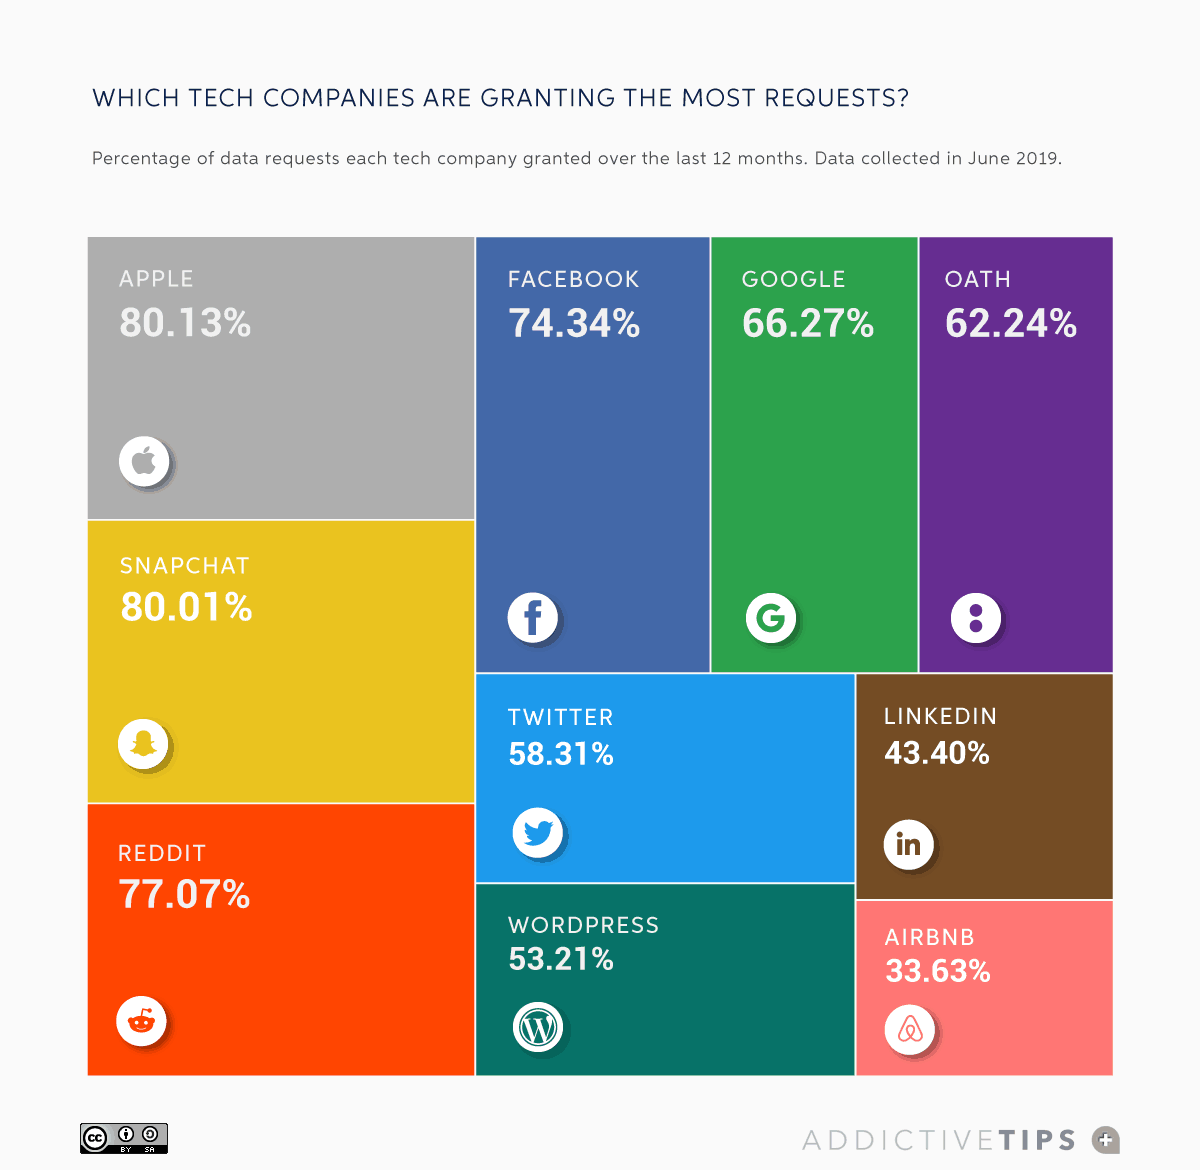 12_Percentage-user-data-requests-granted-by-tech-companies